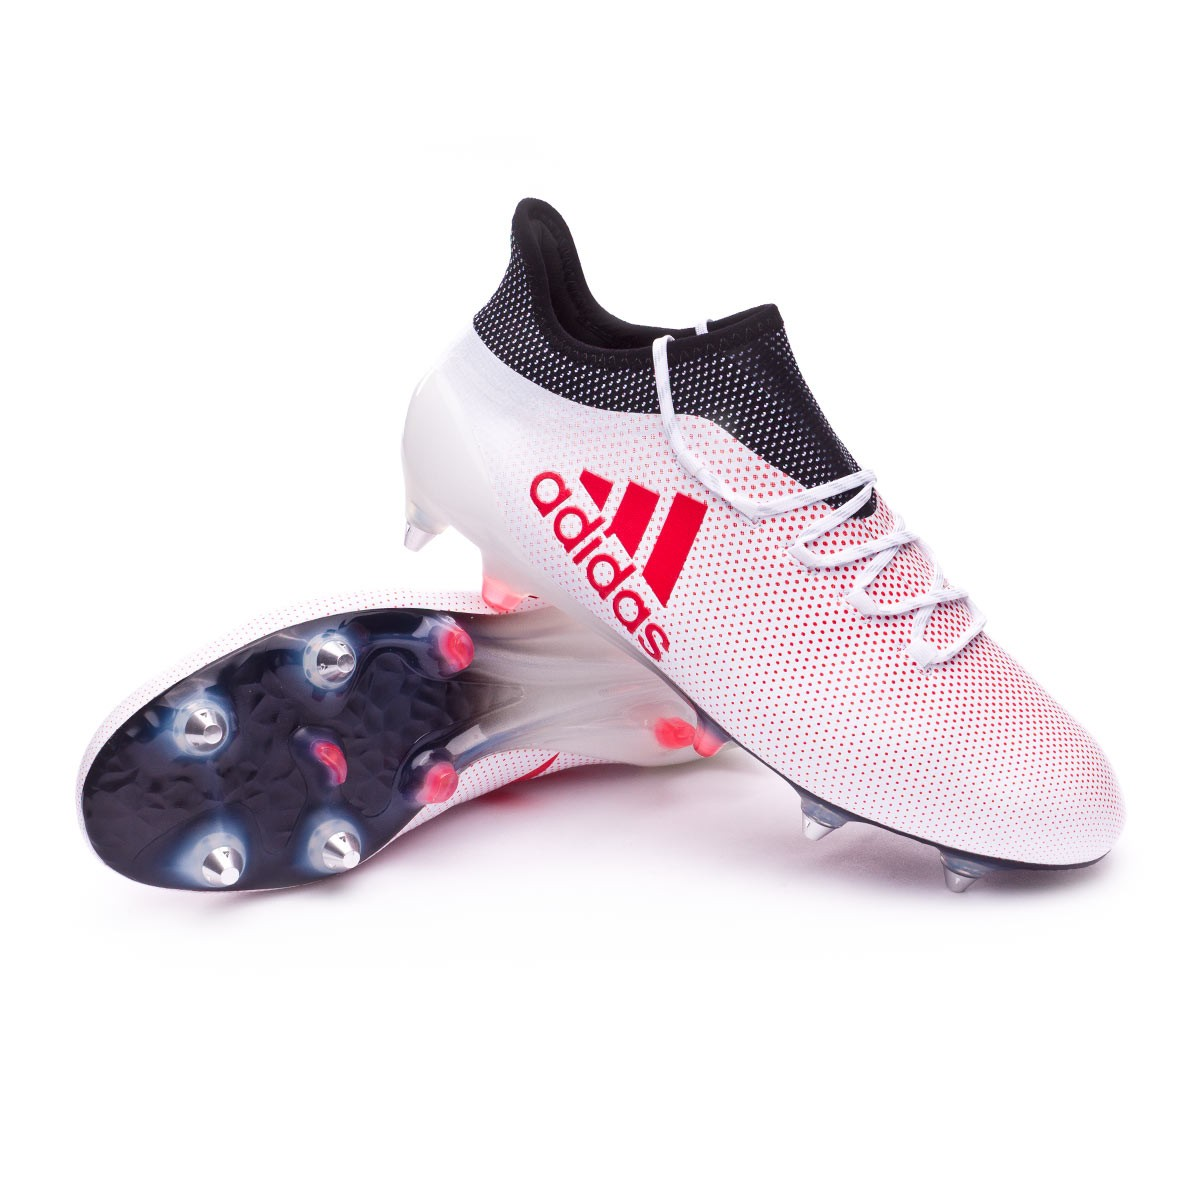 9d8625f9d889b Football Boots adidas X 17.1 SG Grey-Real Coral-Core Black - Tienda ...